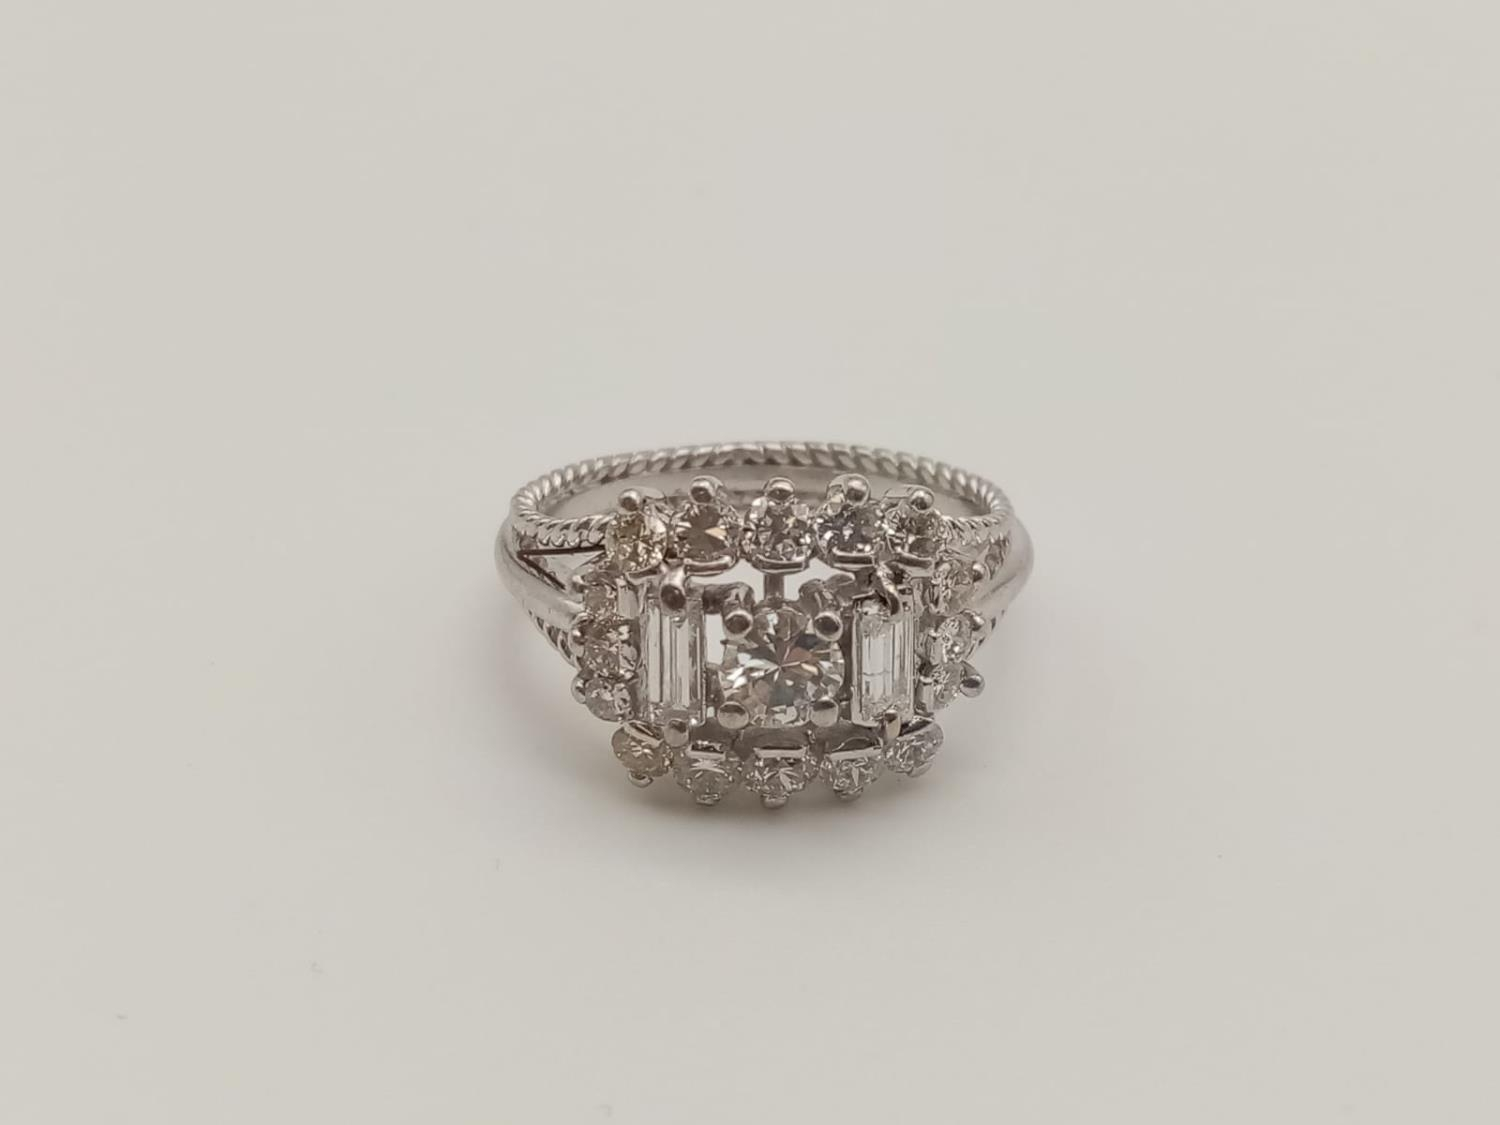 18k white gold diamond ring, WEIGHT 7.6G with over approx 2ct of top quality diamonds, size N1/2 - Image 4 of 6